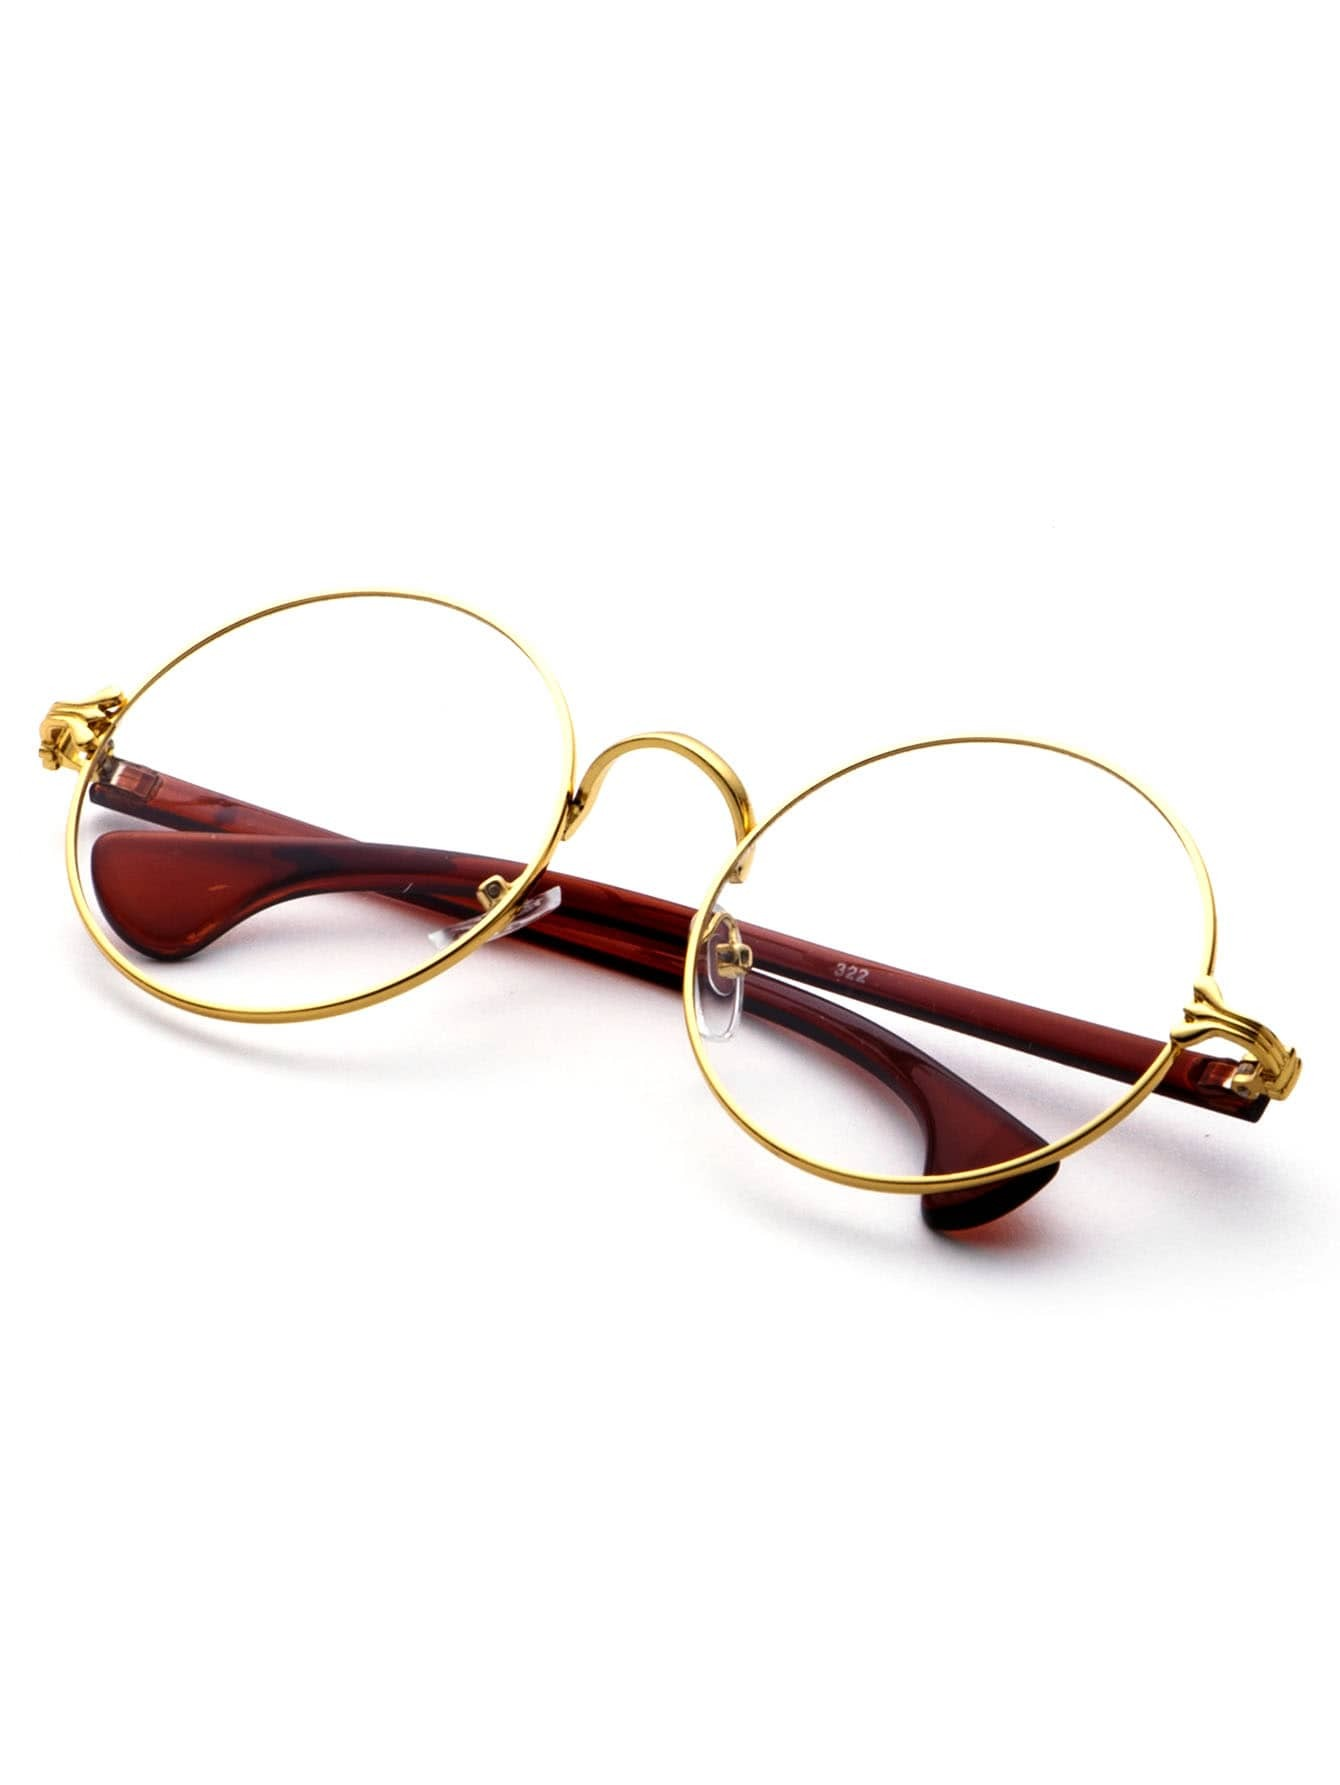 Circle Glasses Gold Frame : Gold Frame Contrast Arm Round Lens Glasses -SheIn(Sheinside)